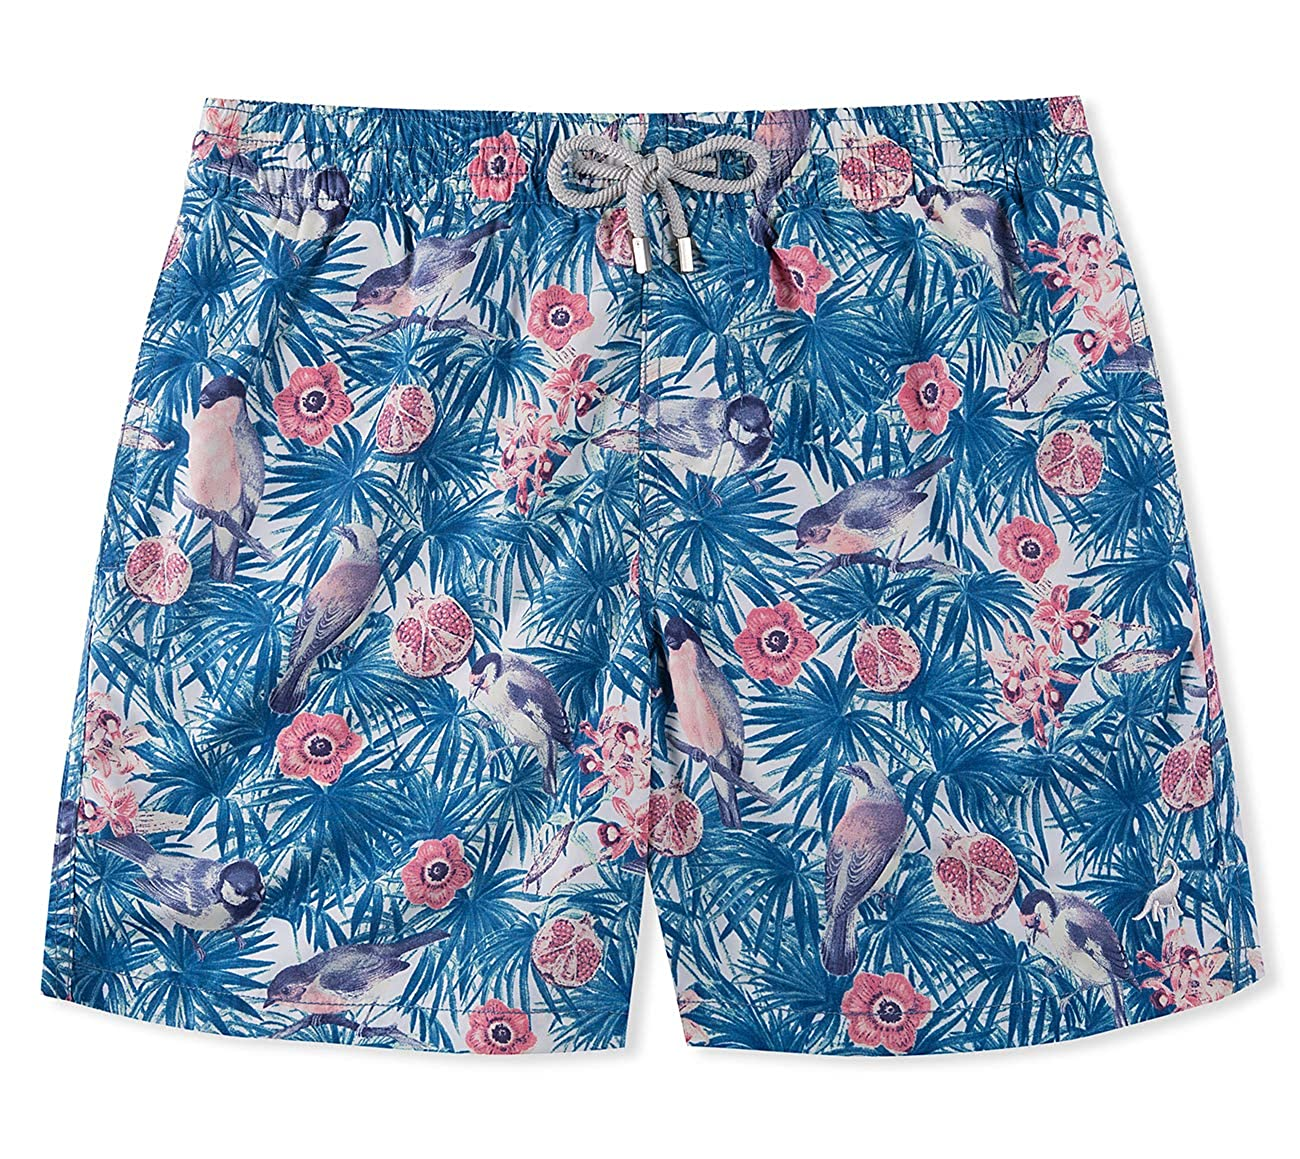 SURF CUZ Men's All Over Printed Quick Dry Beach Volley Swim Trunk SCBSZKM02